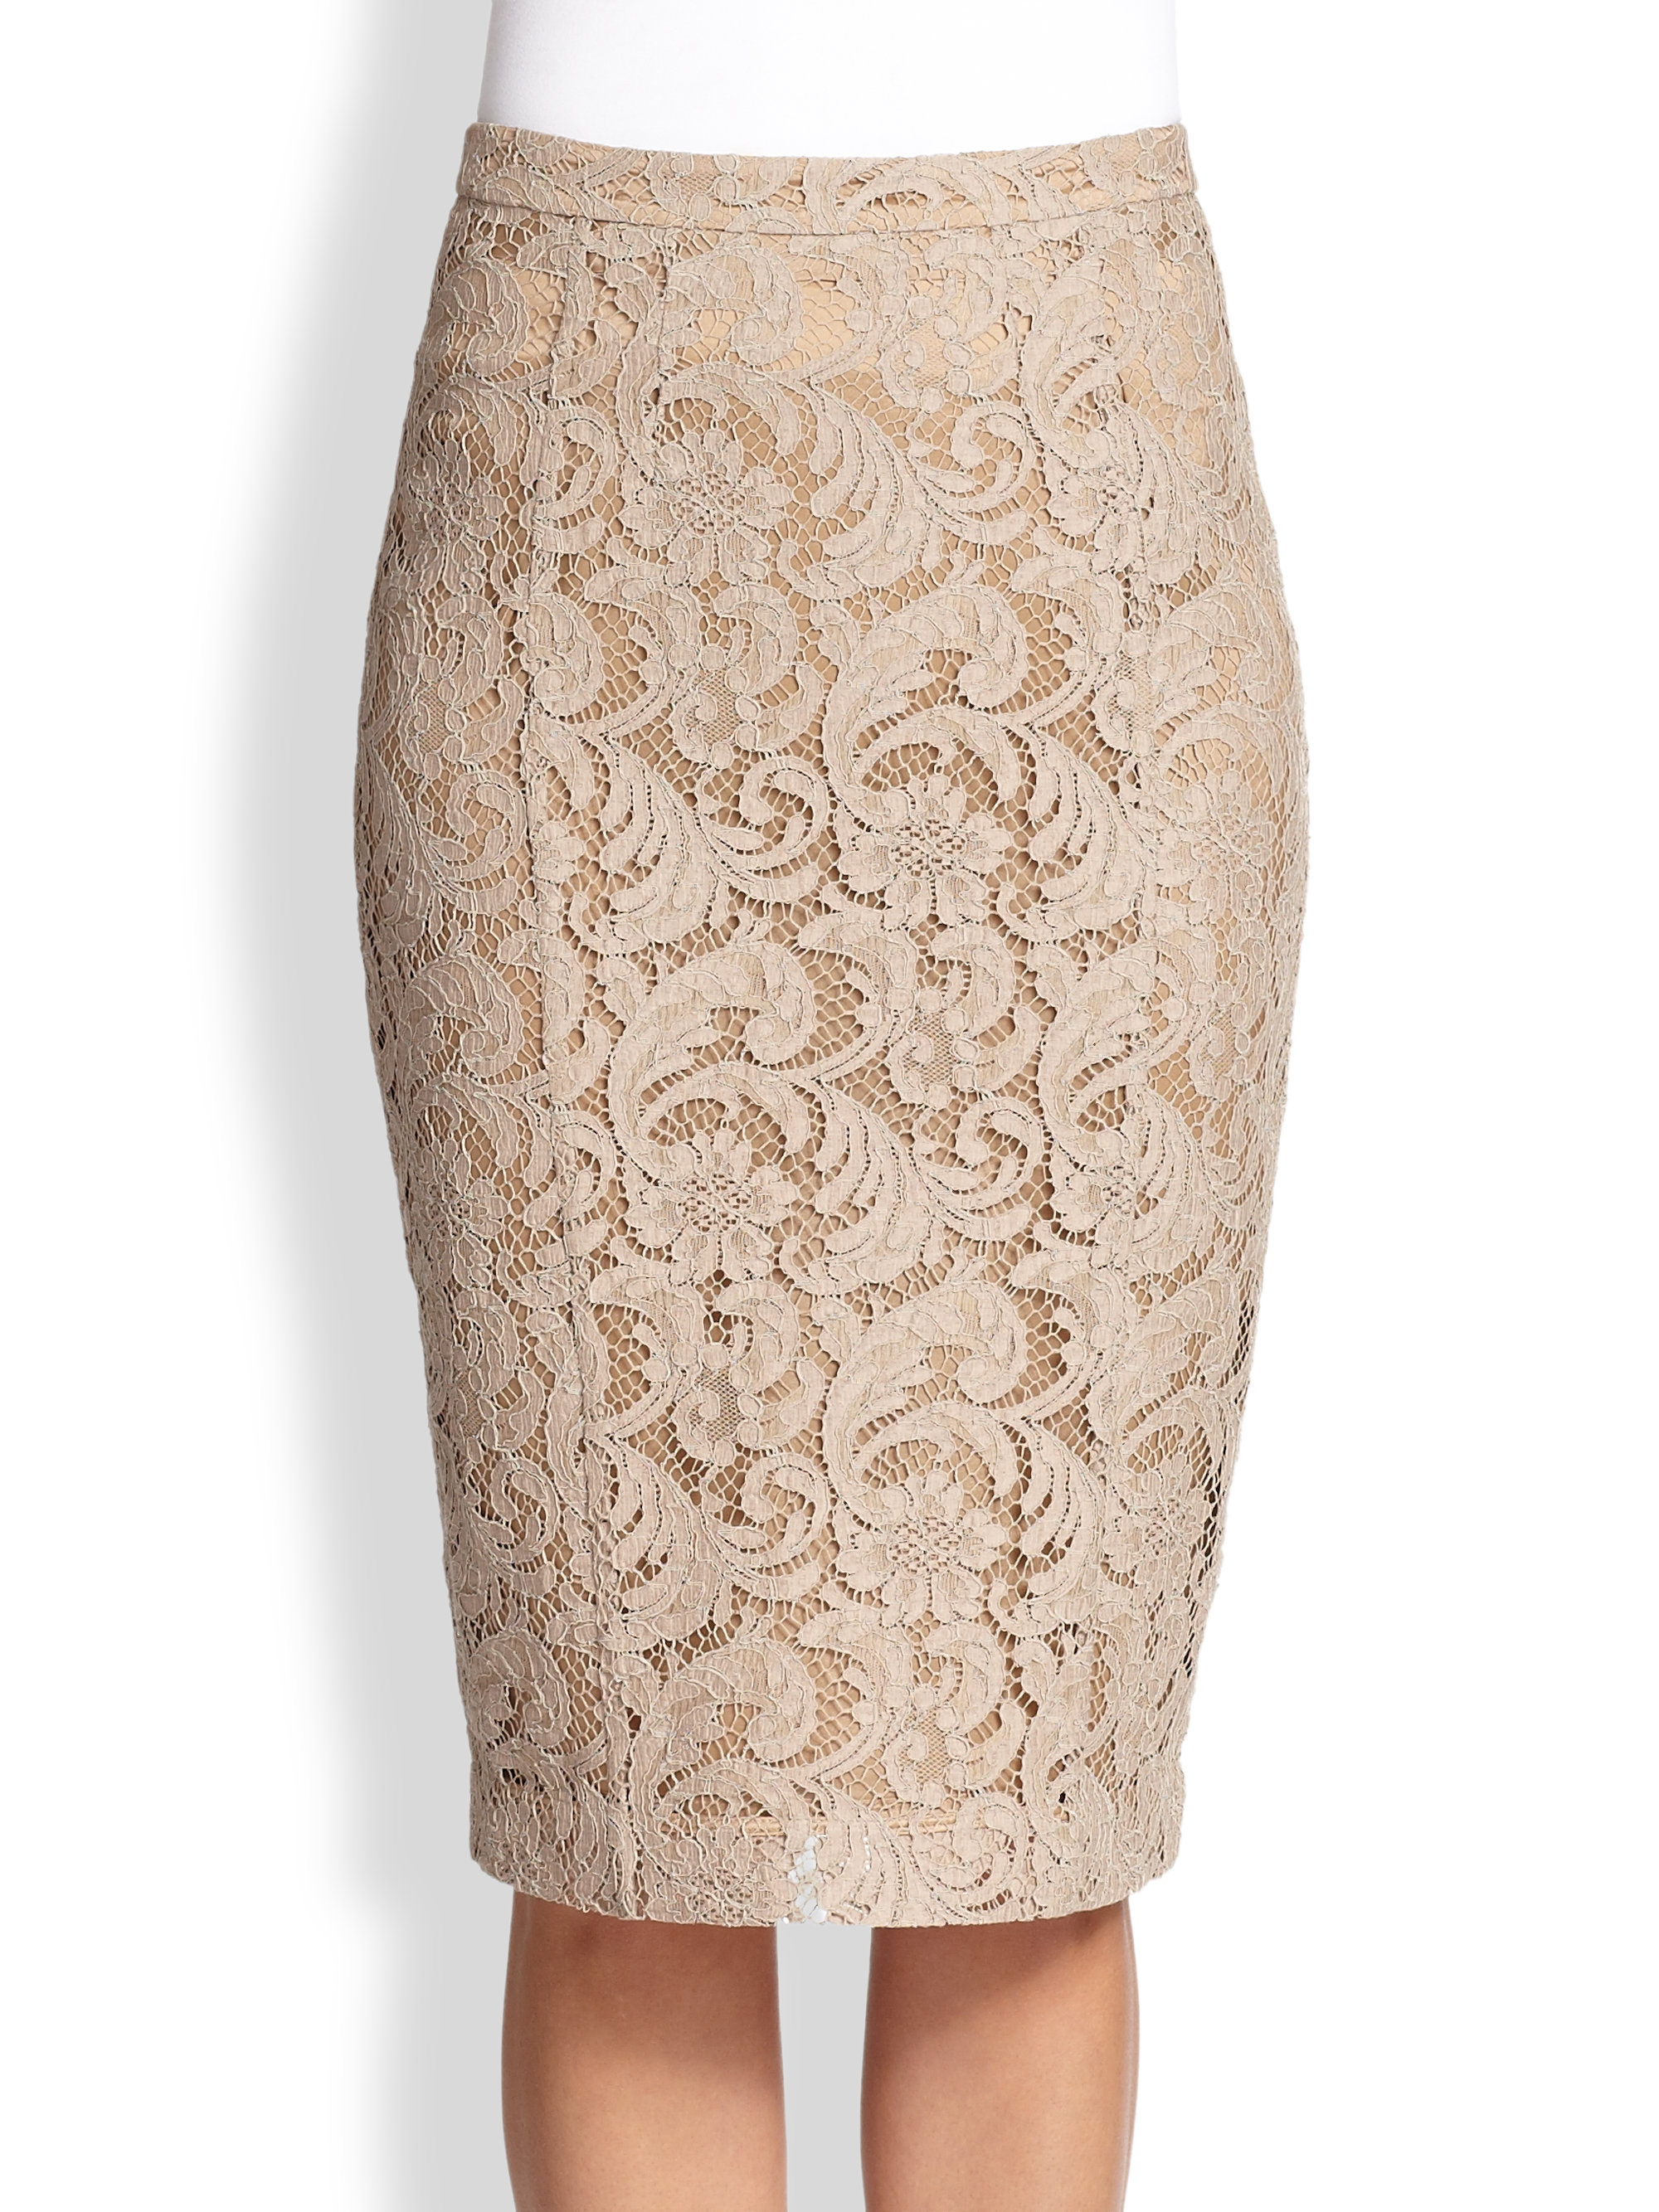 dc3a0785f5 Burberry Lace Pencil Skirt in Natural - Lyst